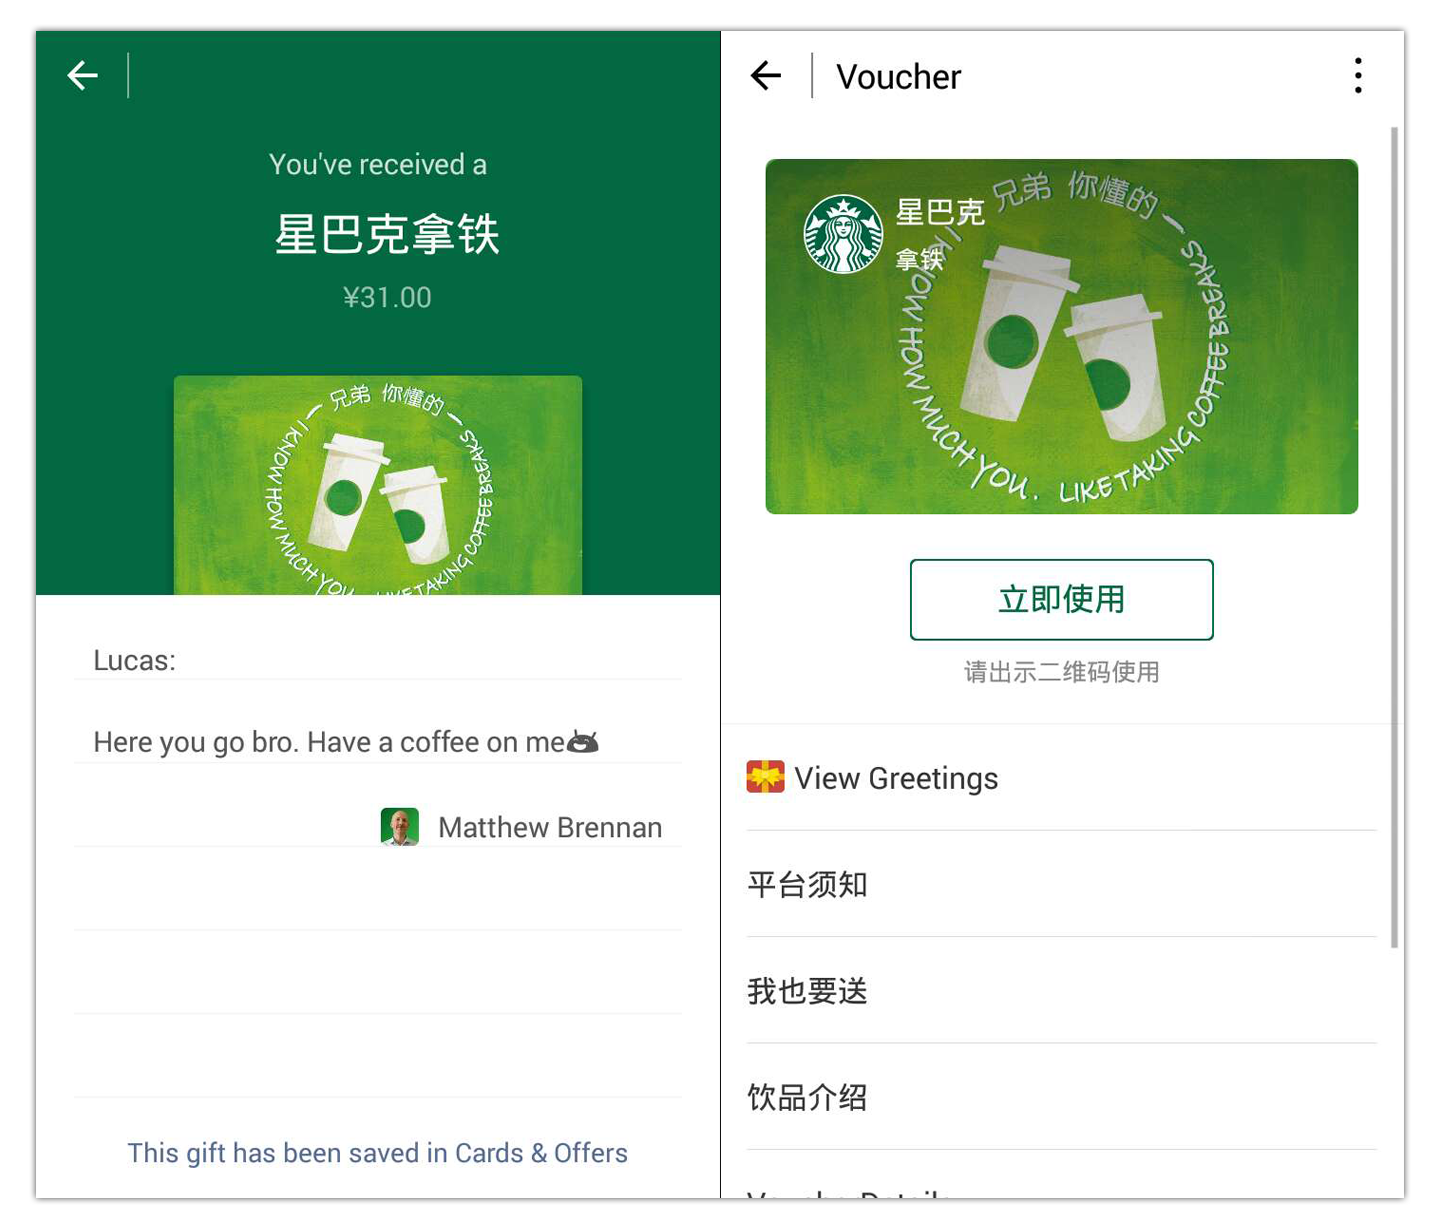 Starbucks WeChat Gifting Feature - China Channel